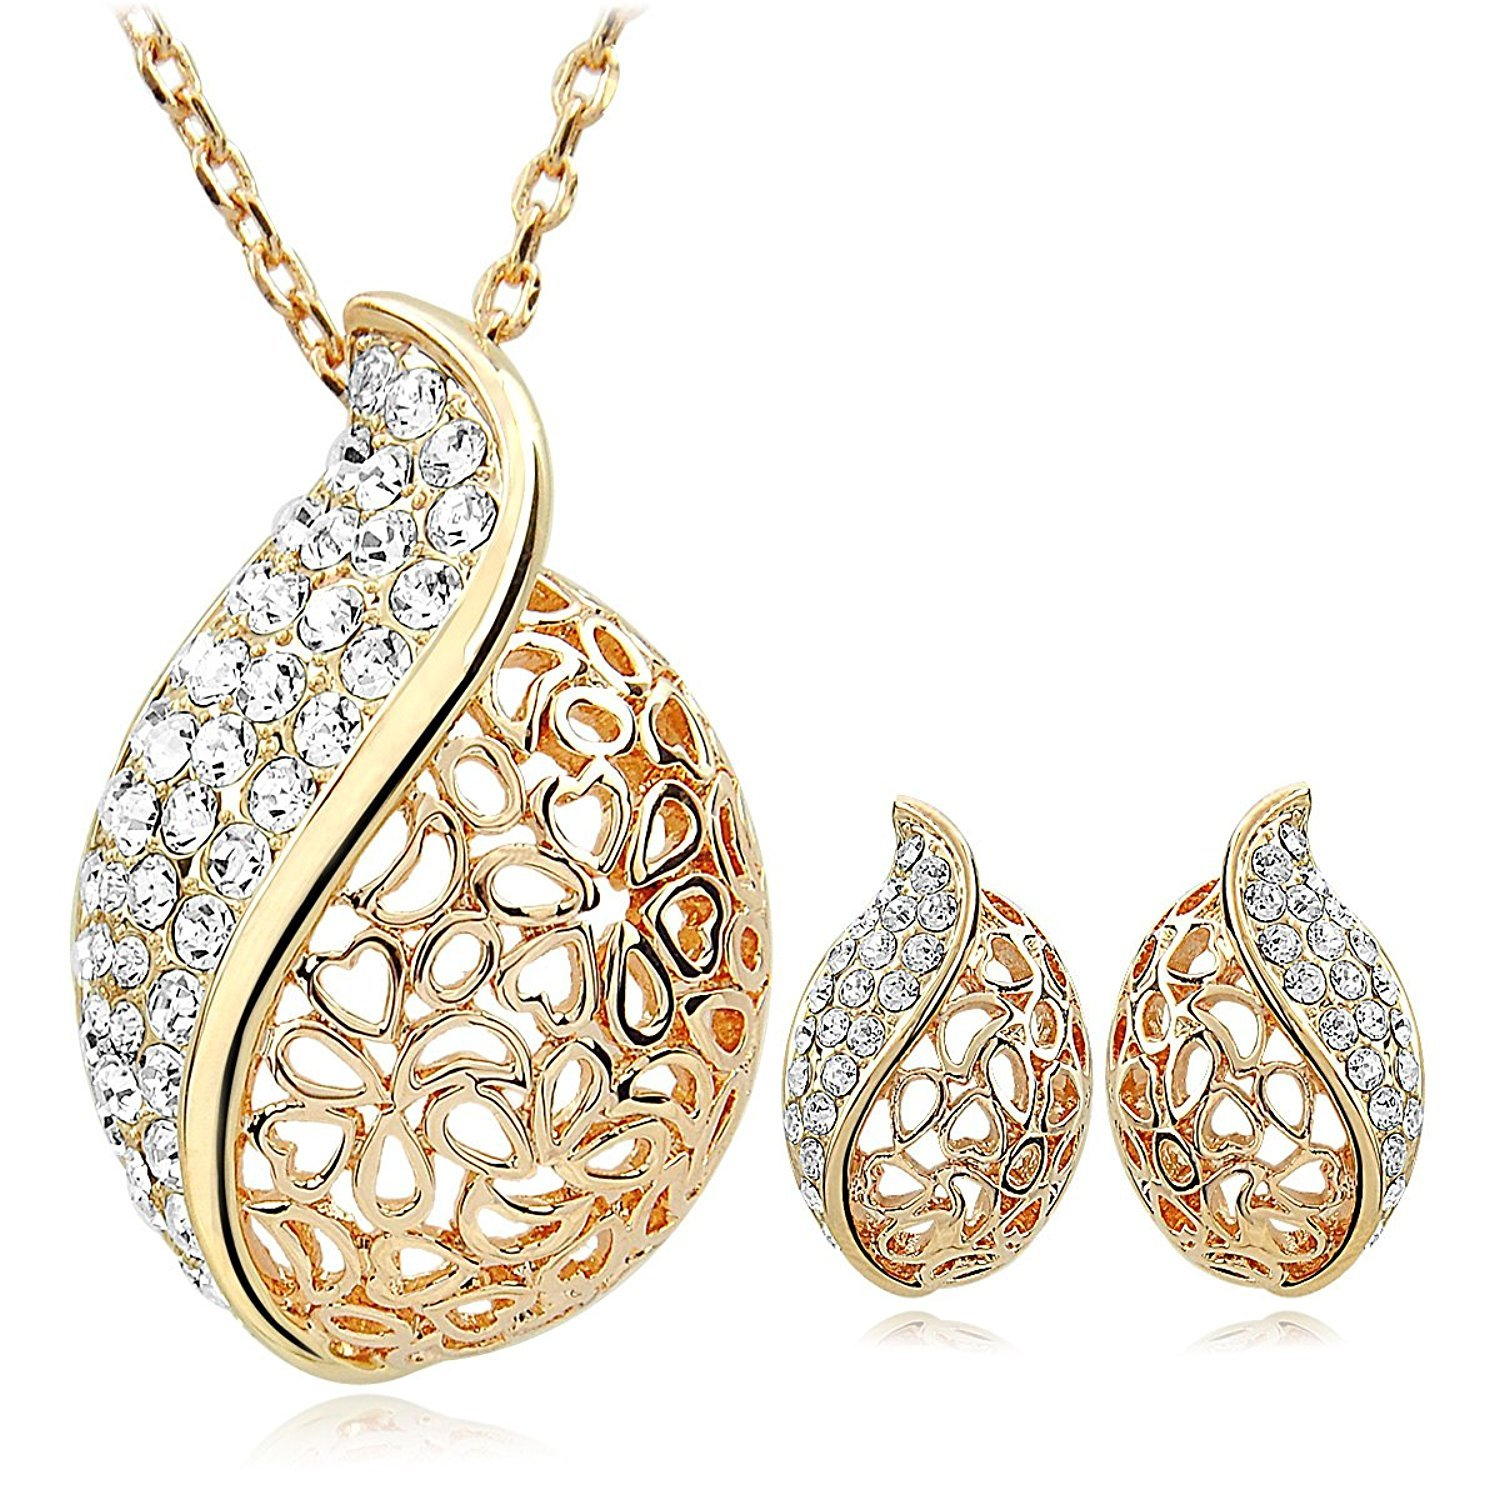 Buy kundaan 24k gold plated crystal pendant necklace set with stud buy kundaan 24k gold plated crystal pendant necklace set with stud earring for womengirls online at low prices in india amazon jewellery store amazon aloadofball Choice Image